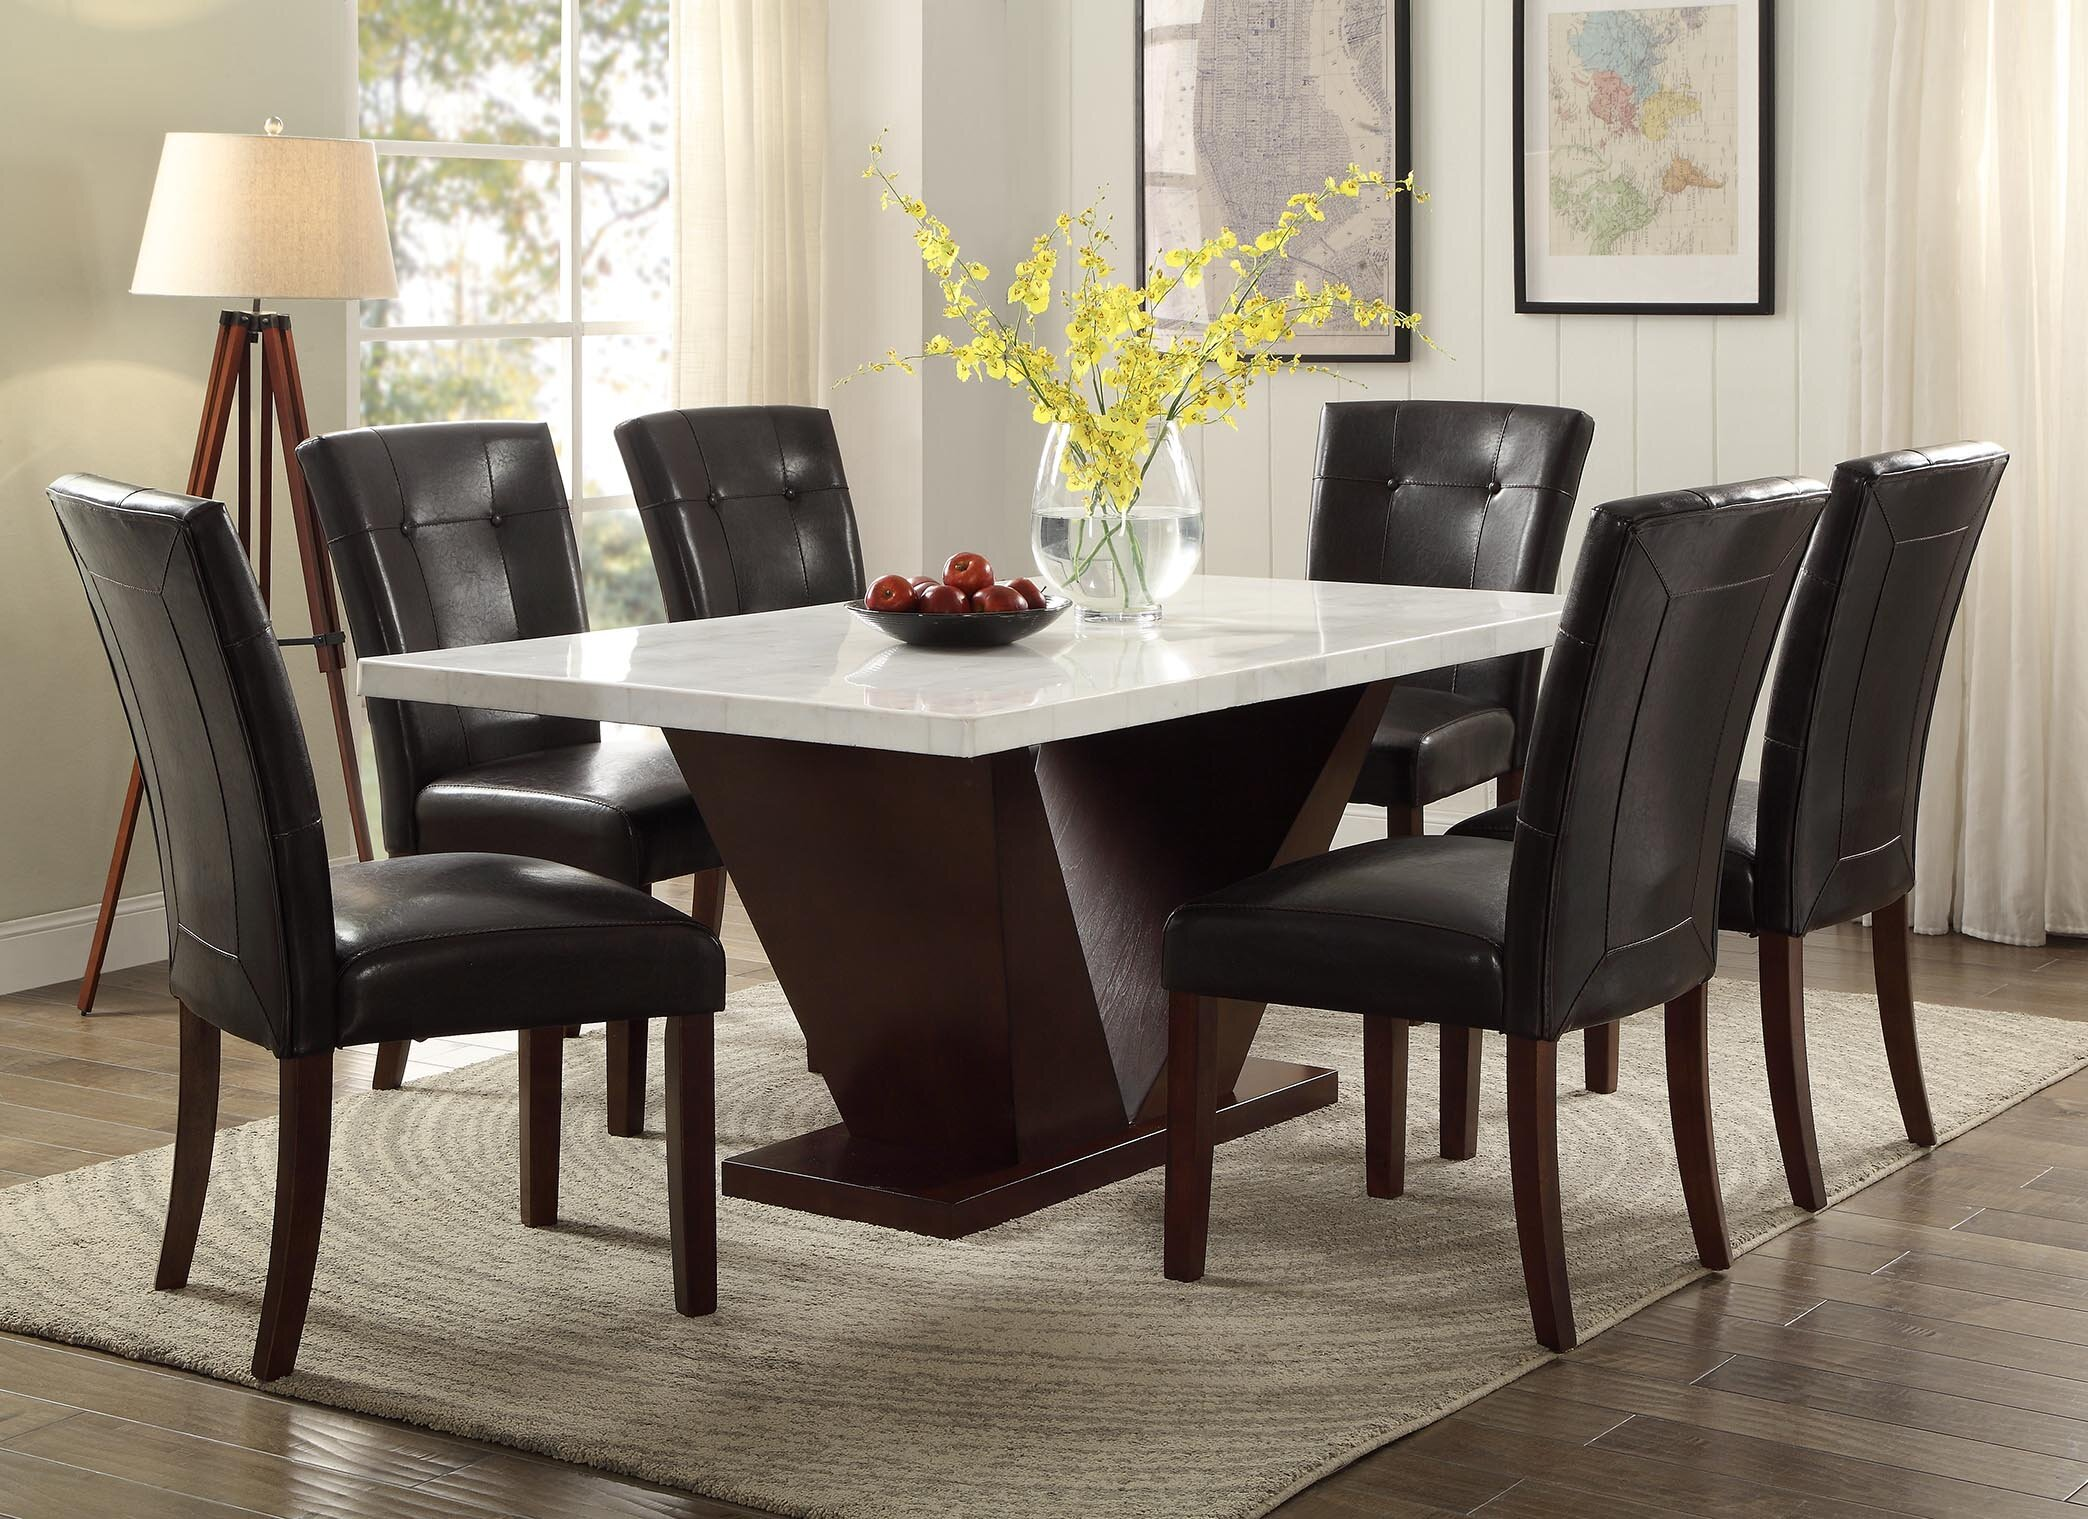 ACME Furniture Forbes Marble Dining Table | Wayfair